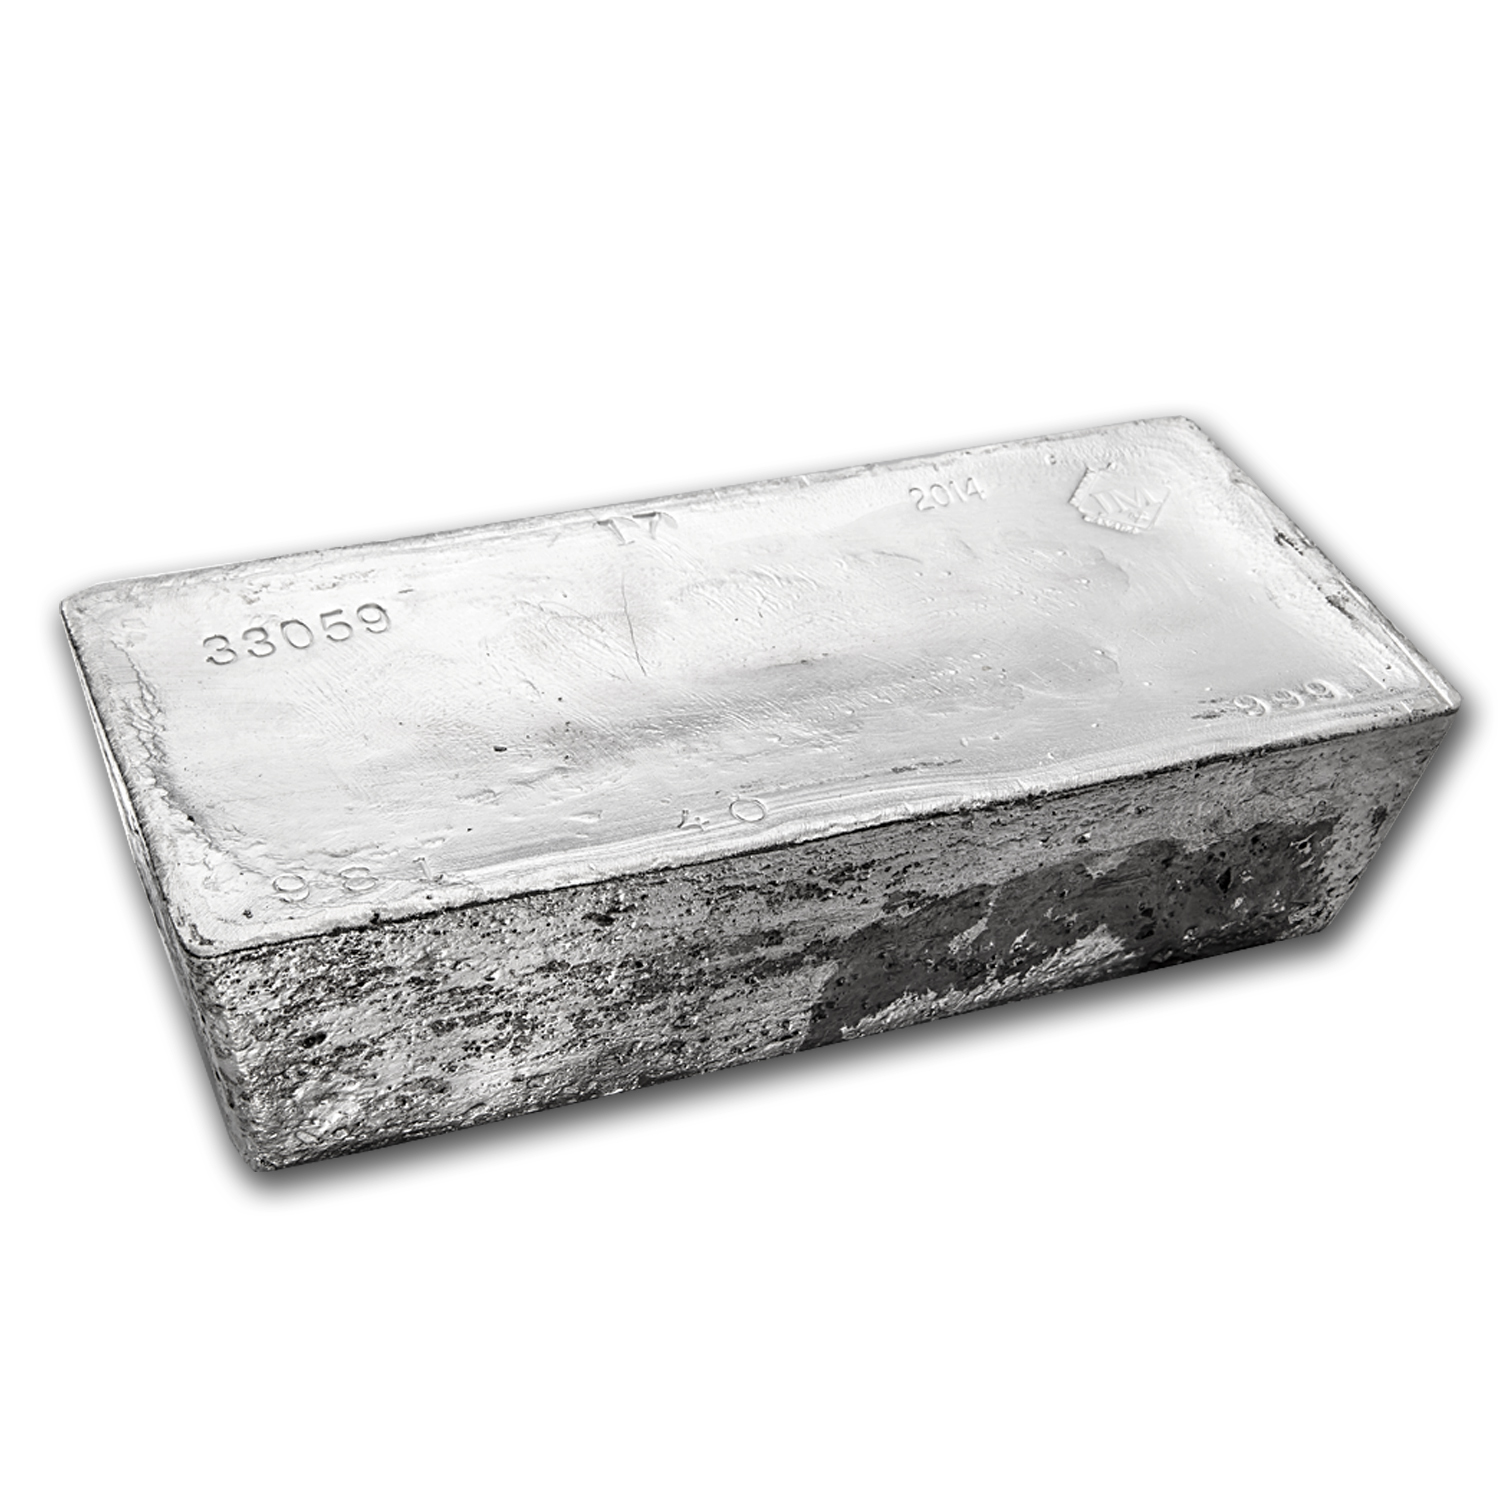 956.40 oz Silver Bar - Johnson Matthey